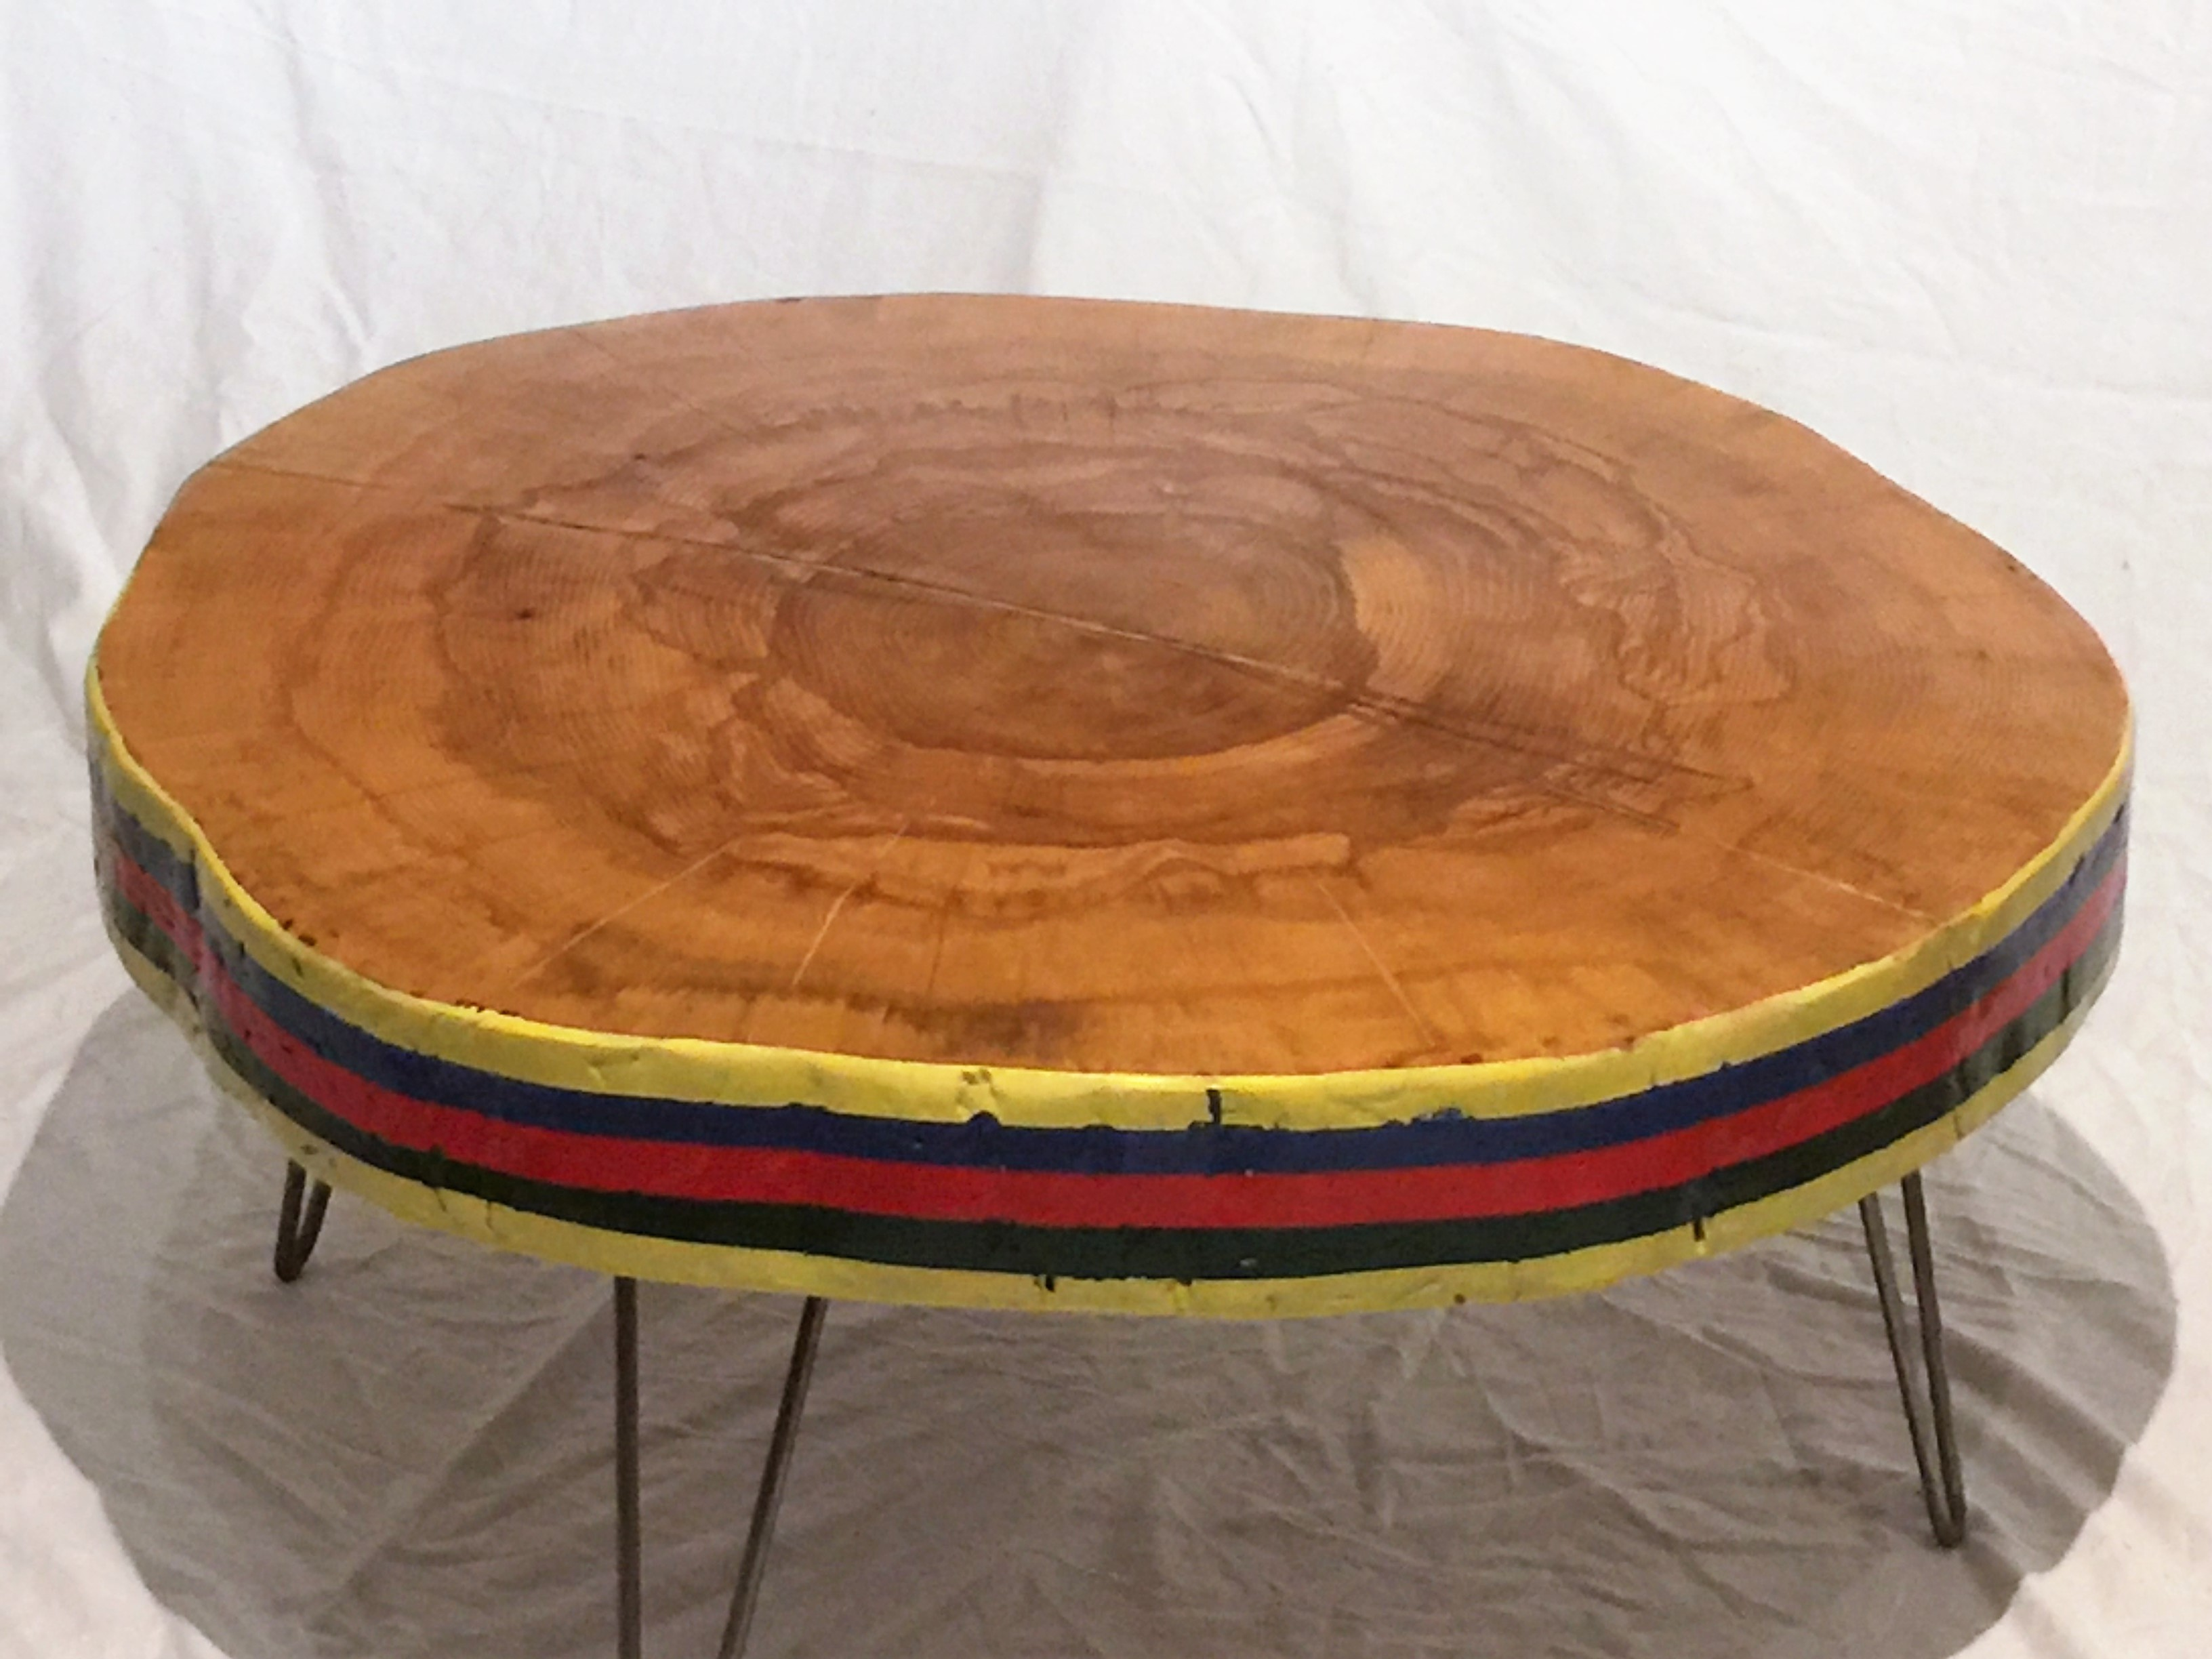 Sweet Gum Slab Coffee Table – The Camptons Art and Design Studio